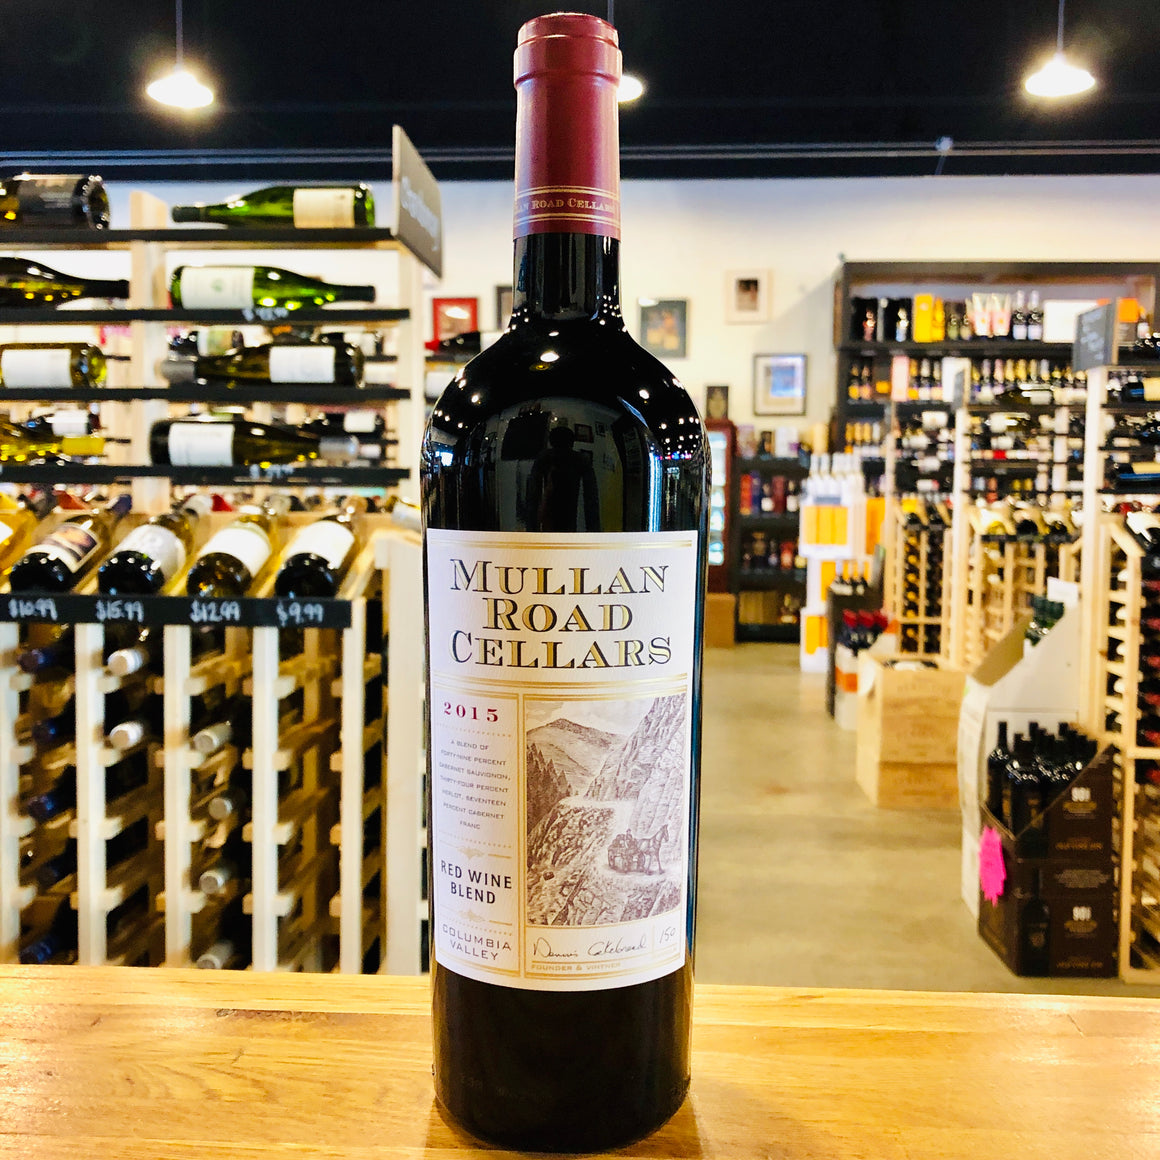 MULLAN ROAD CELLARS RED WINE BLEND 2015 750ML